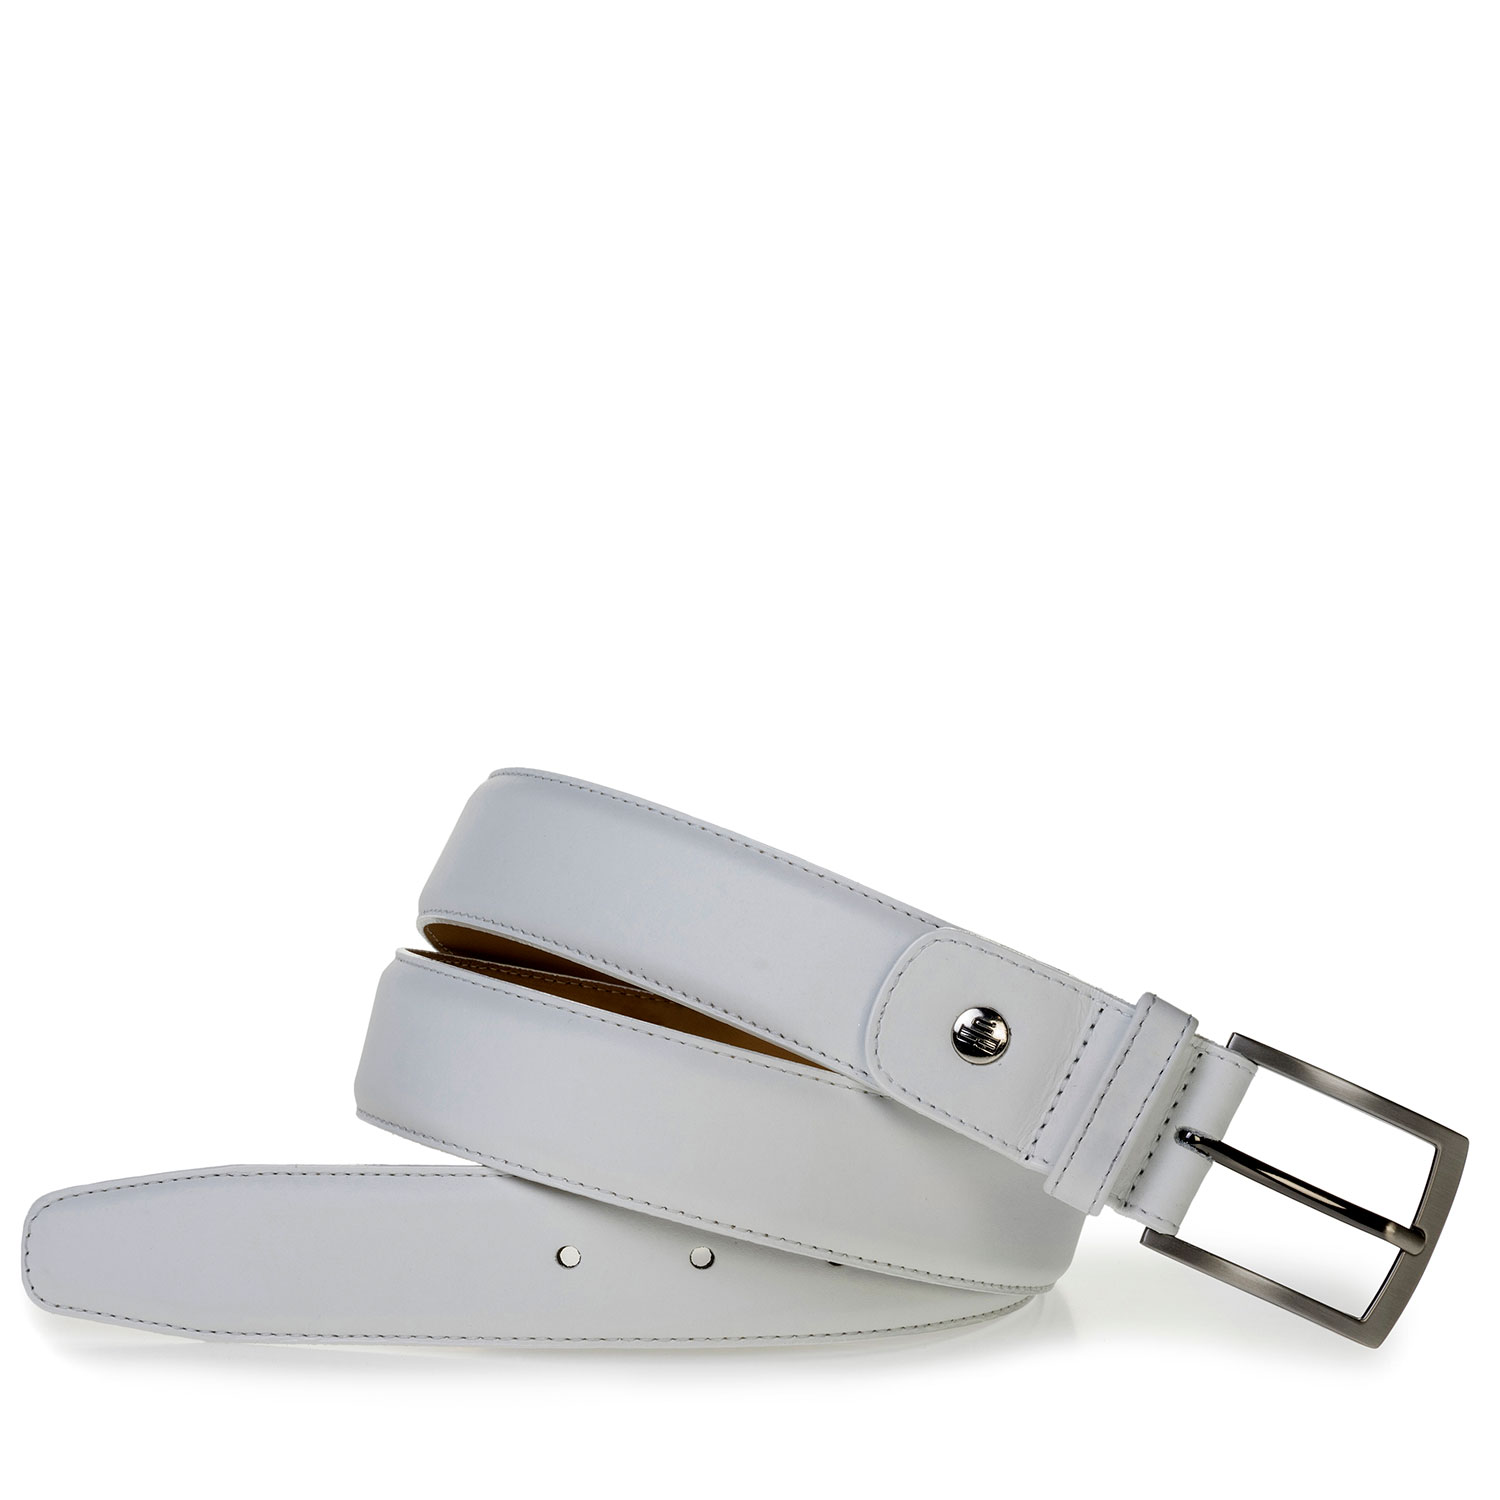 75076/41 - White calf leather belt